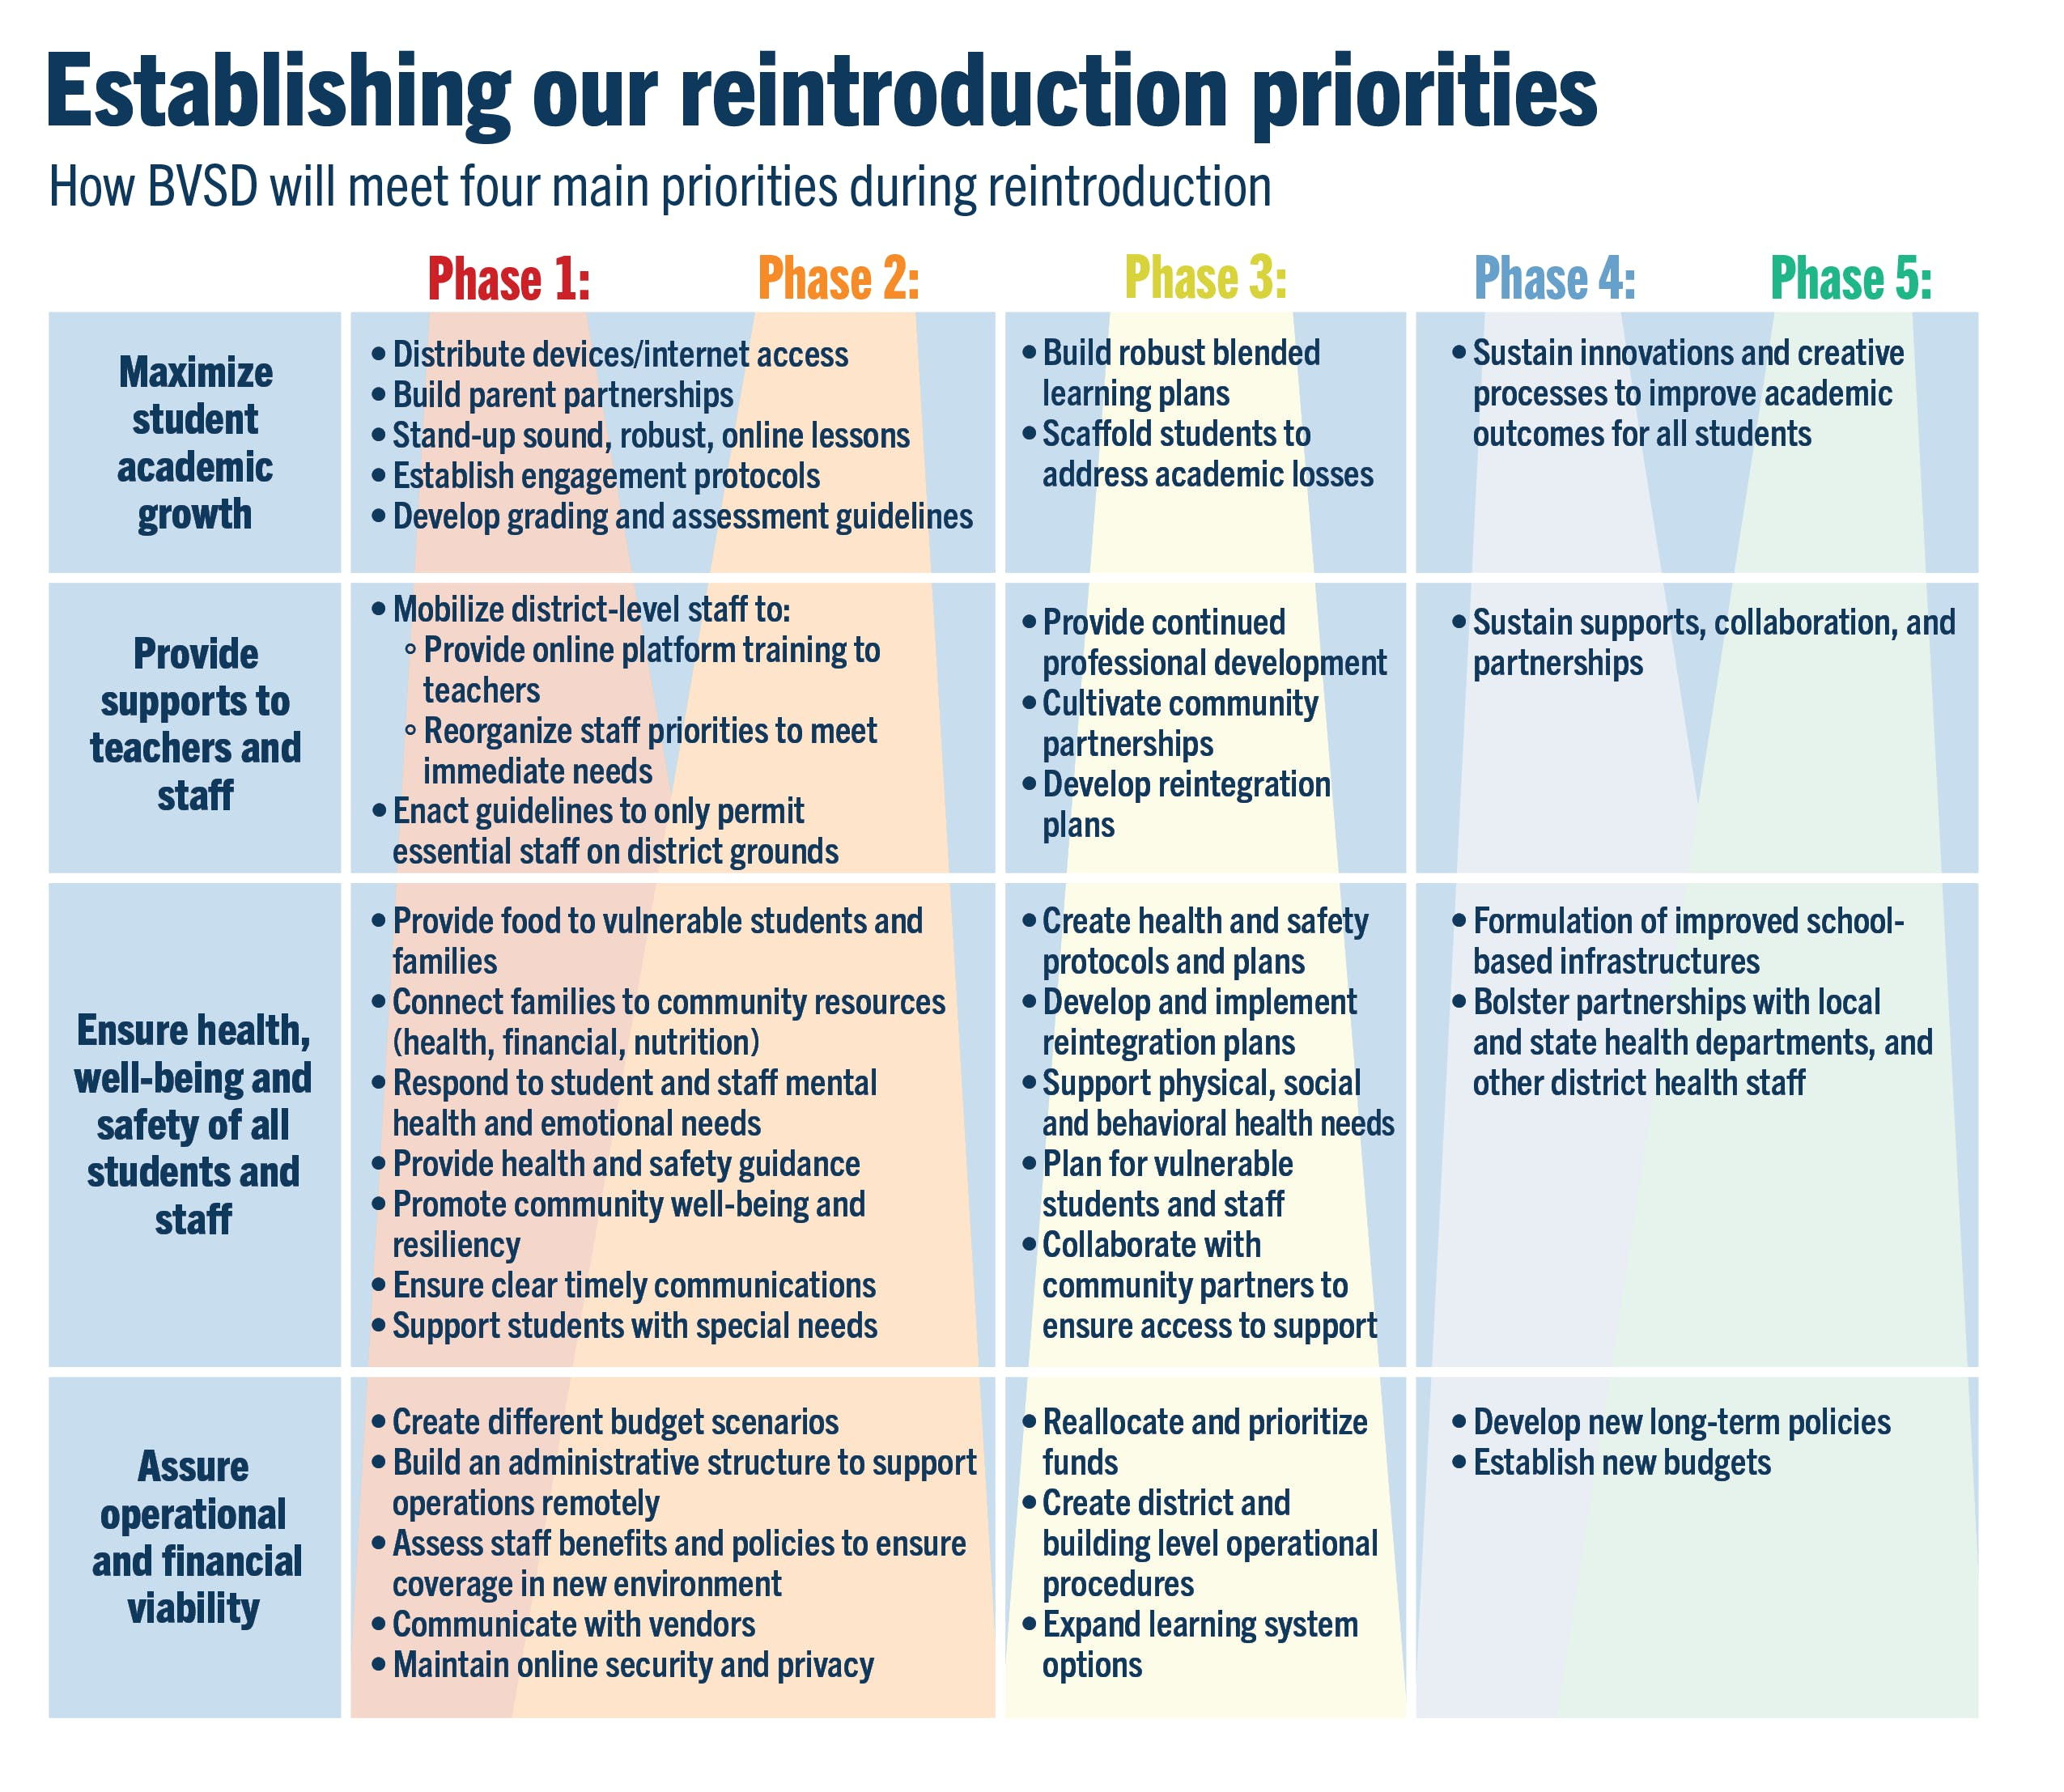 Our reintroduction priorities